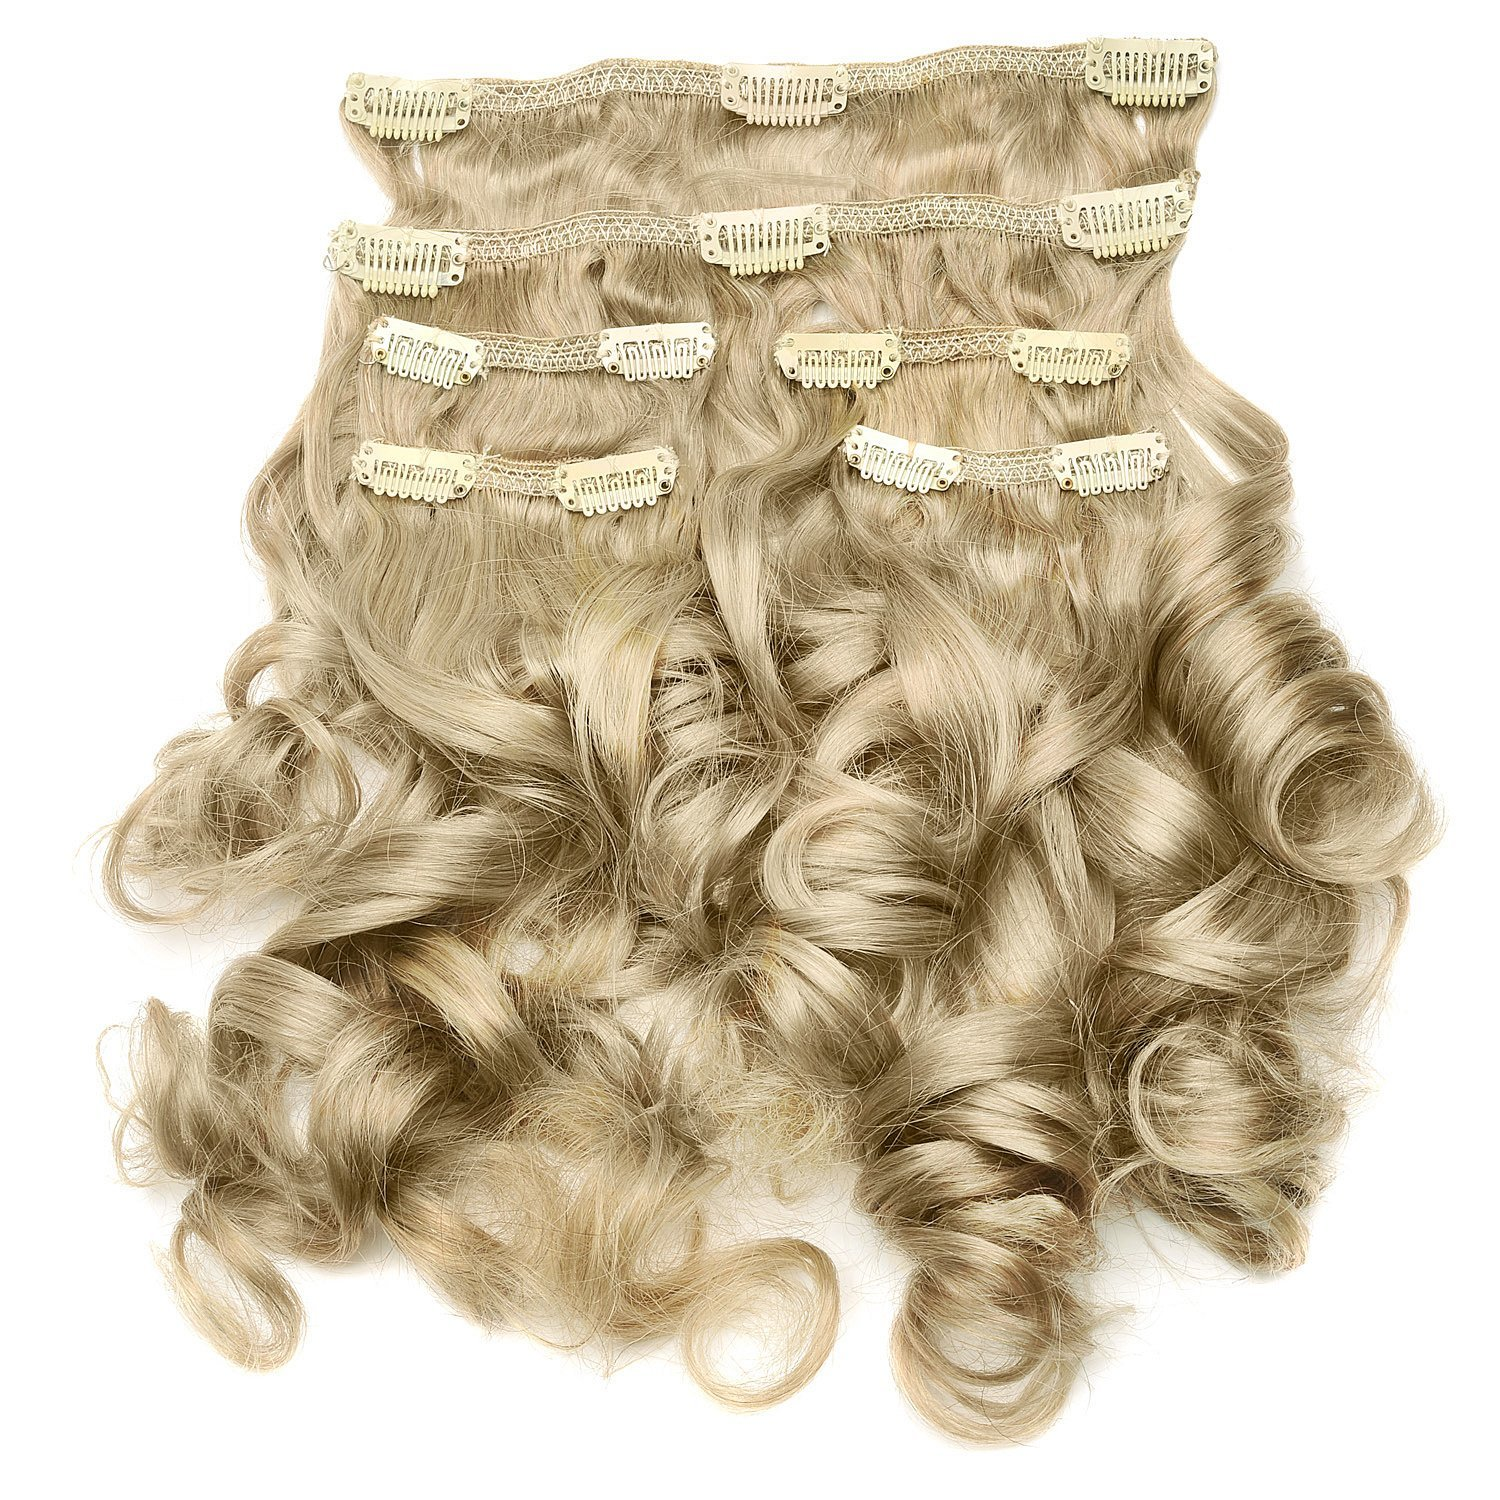 e3786cf5c21 Buy Beauty Queen Hair Extensions Pre-Curled 20 Inch (Makeover Set ...